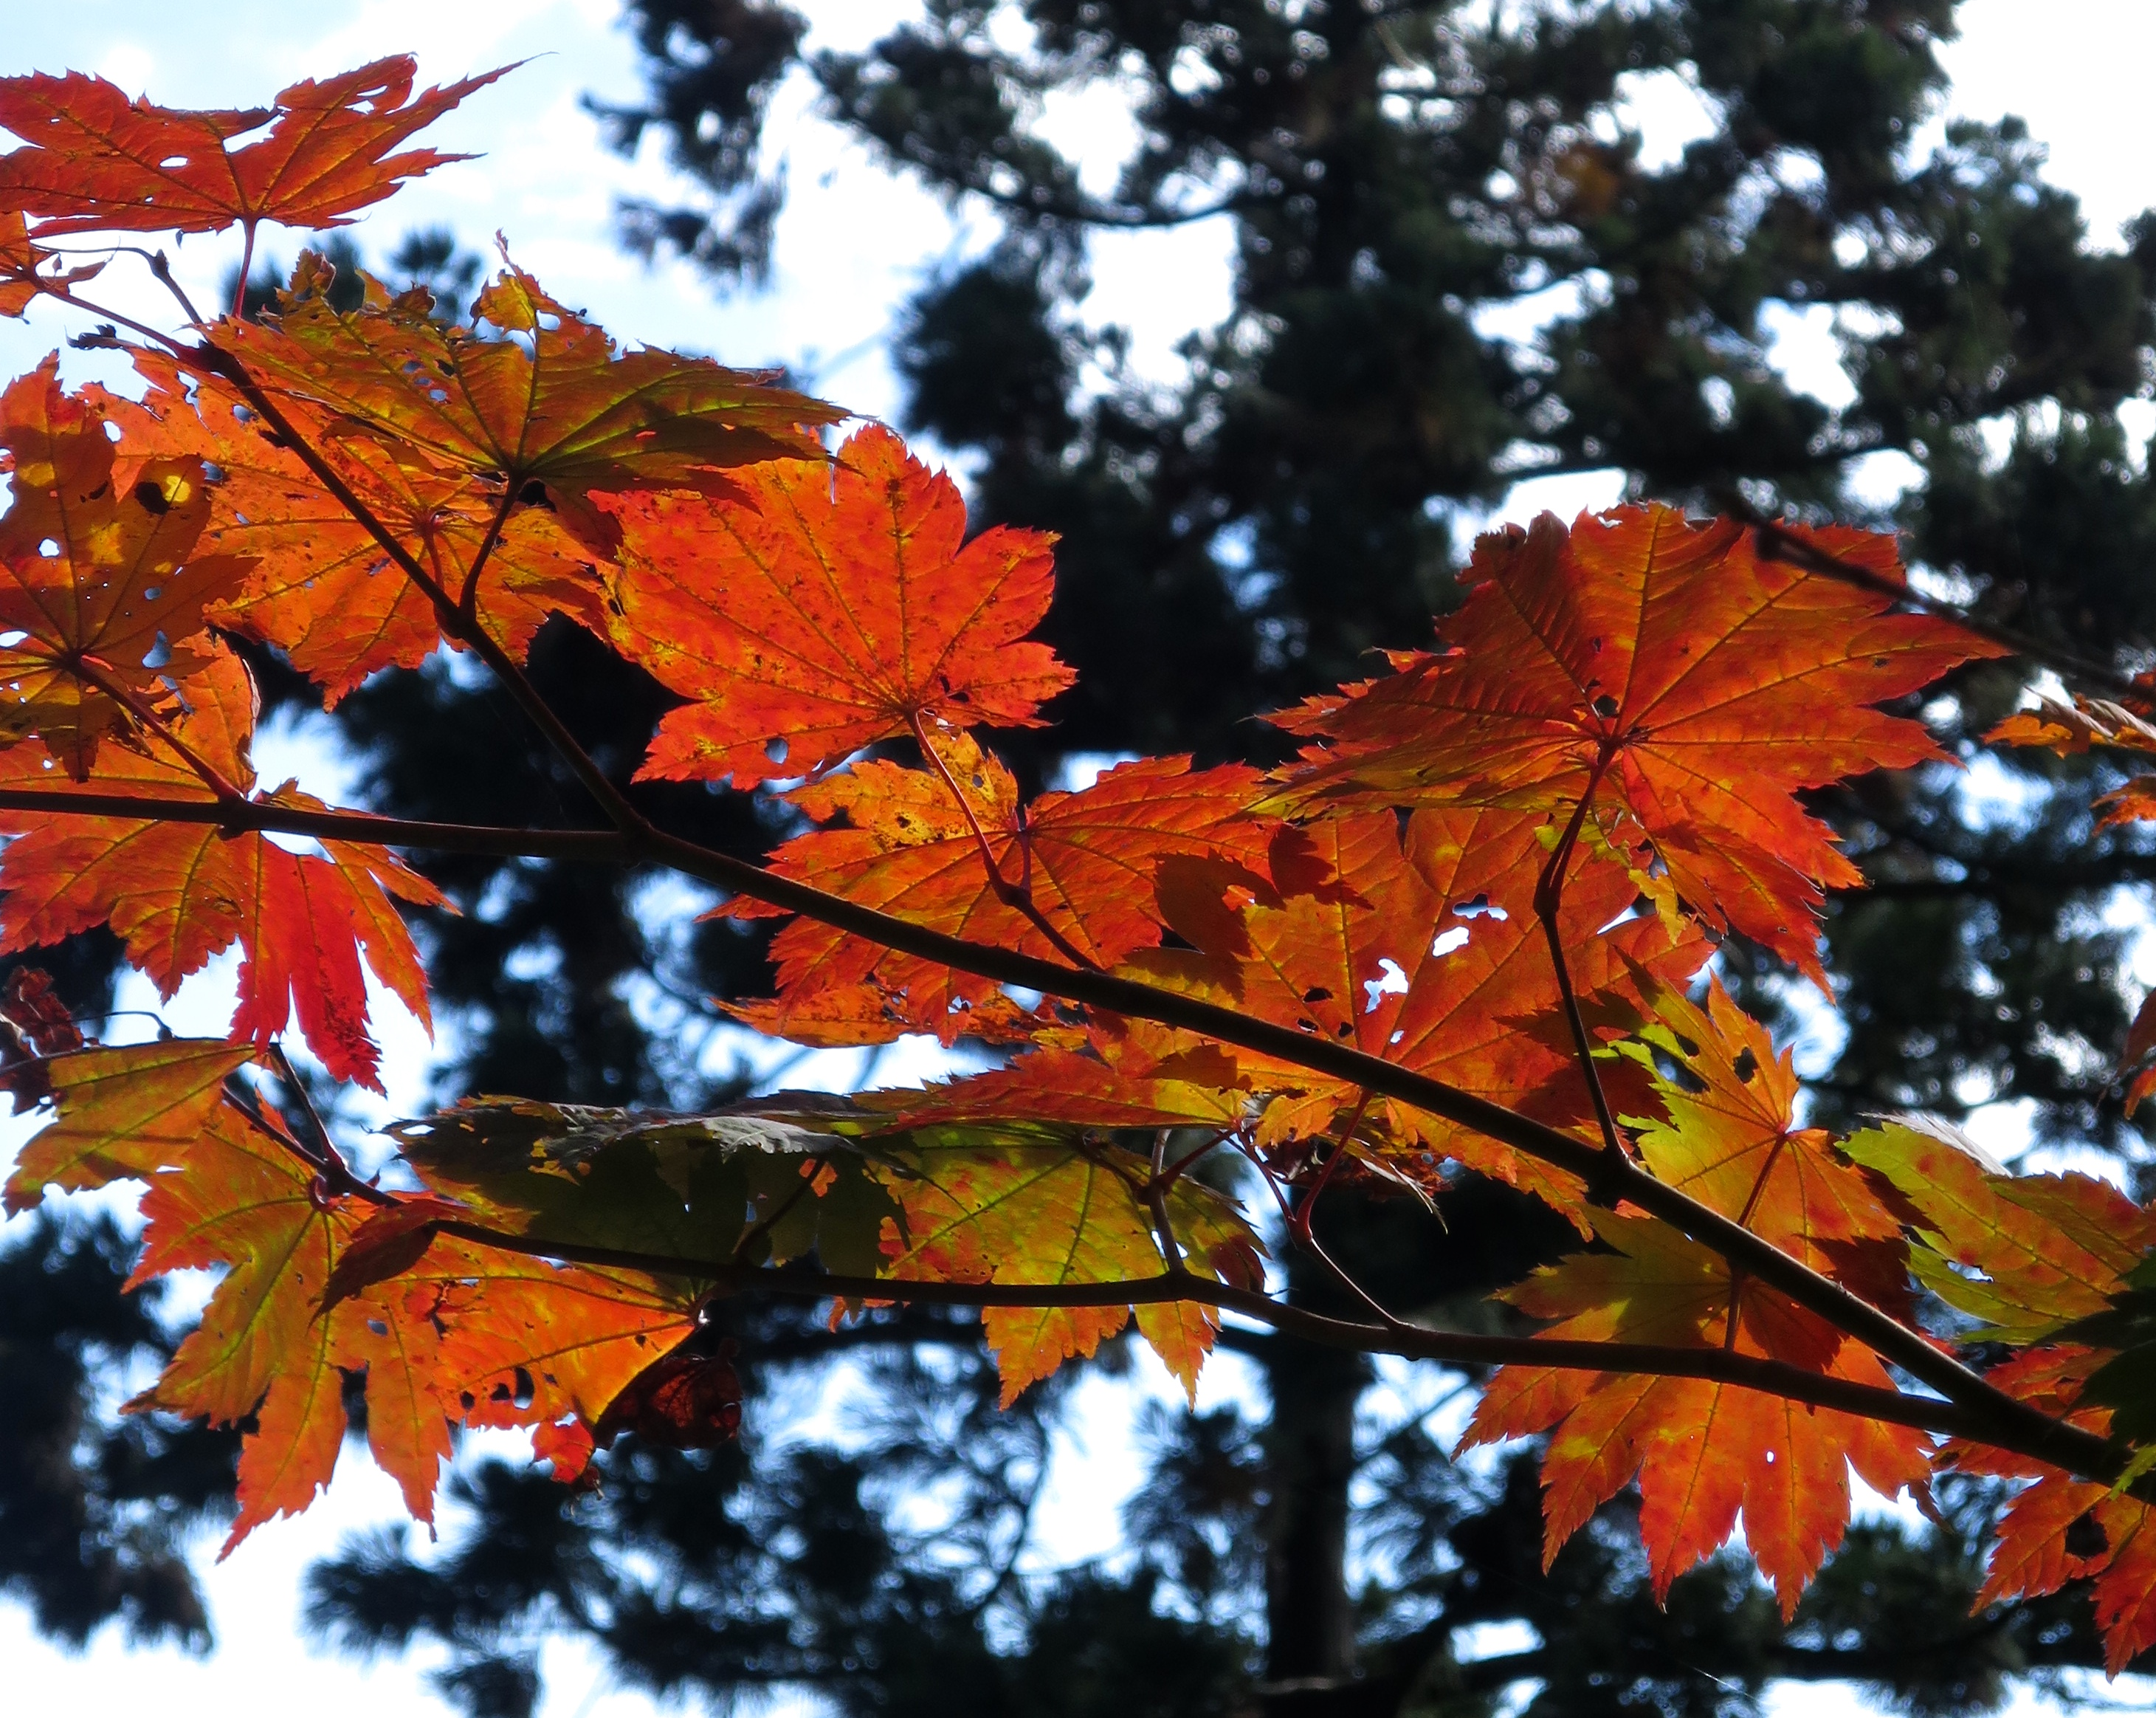 You'll be amazed by how many different kinds of maple trees there are.